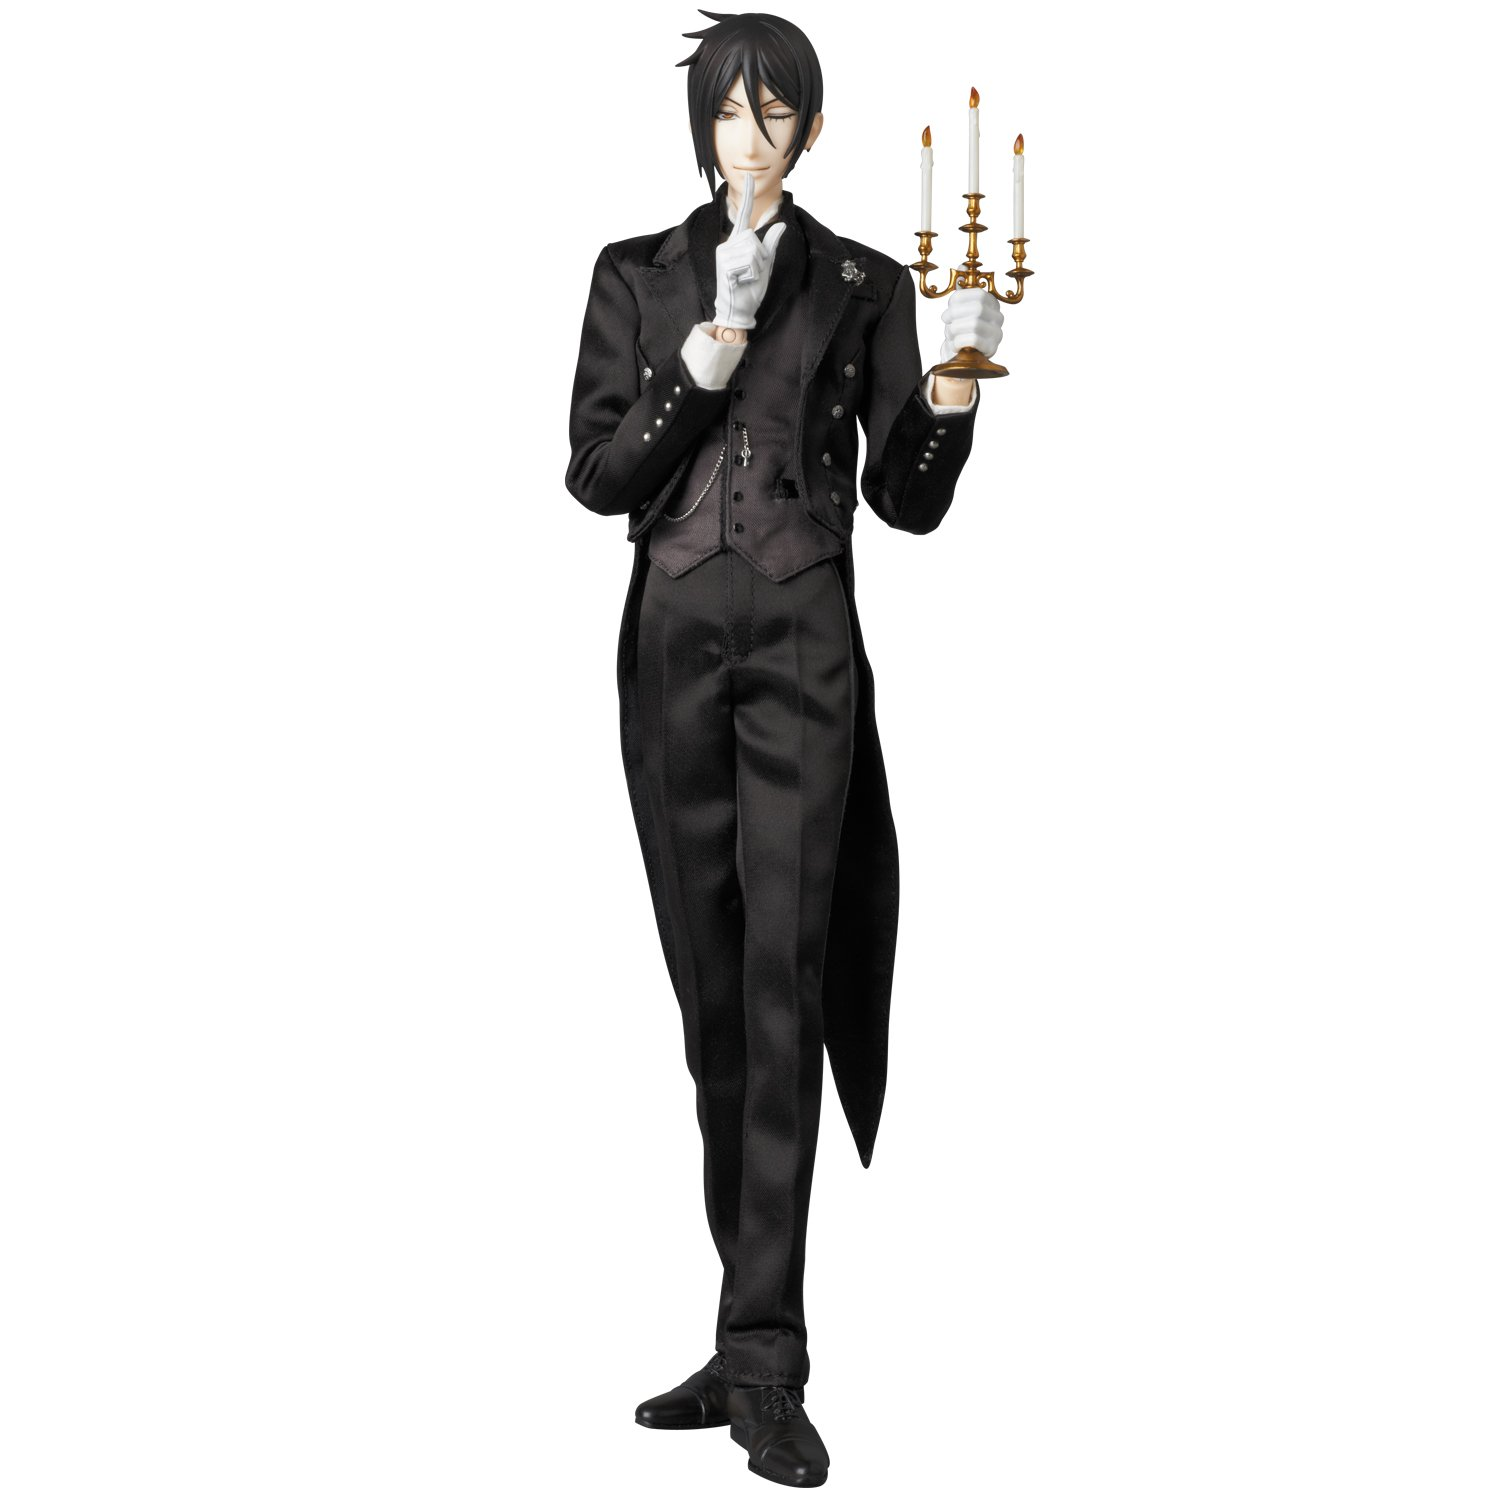 Sebastian Black Butler Full Body